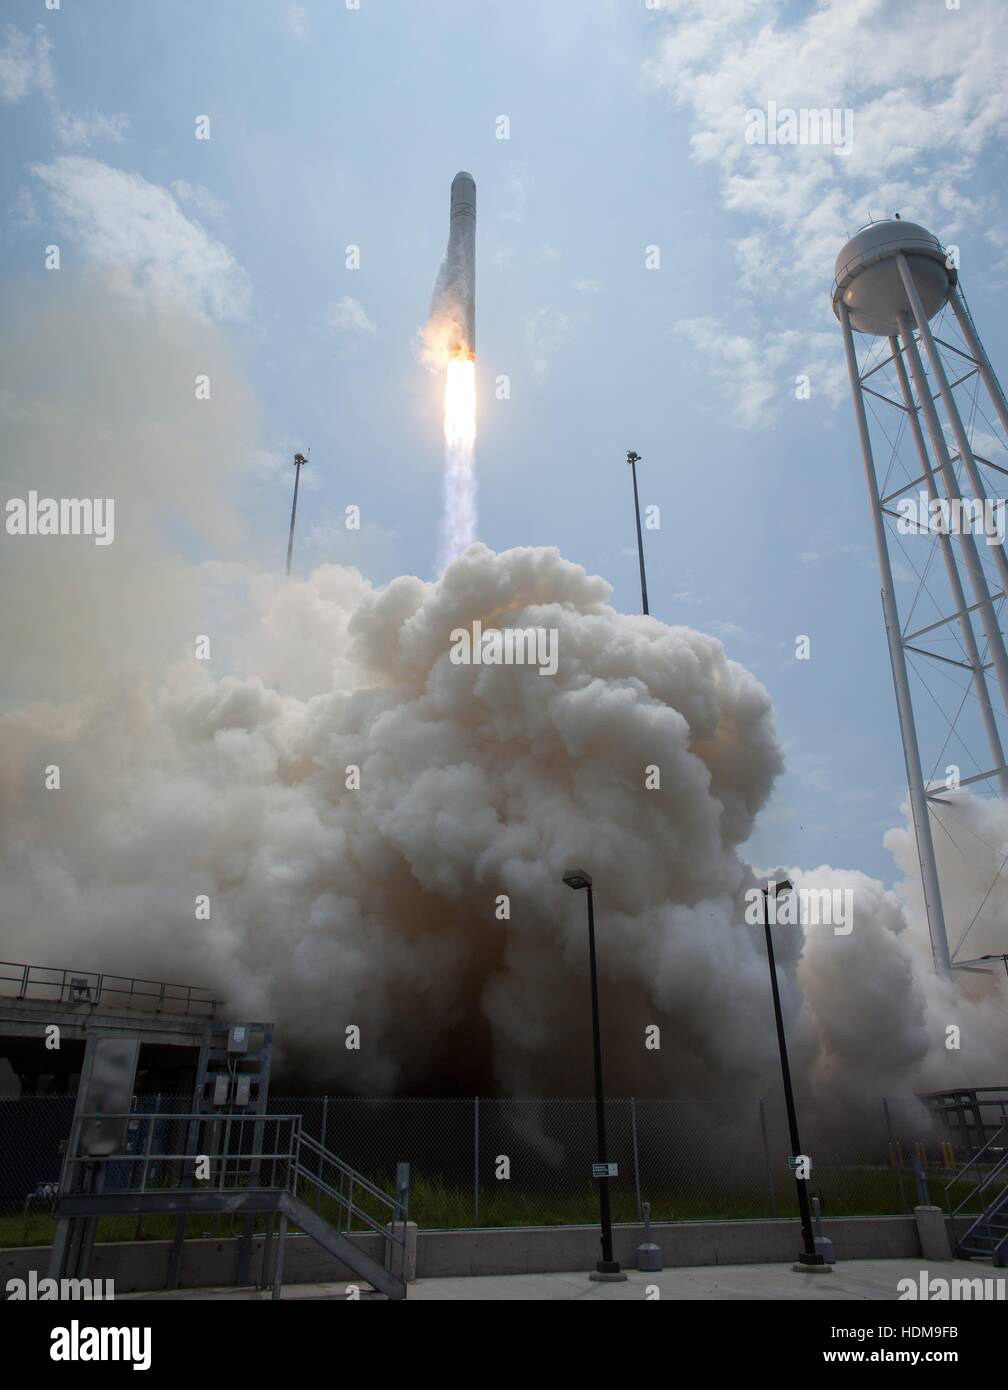 The Orbital Sciences Corporation Antares rocket with Cygnus spacecraft onboard launches from Launch Pad-0A at the - Stock Image